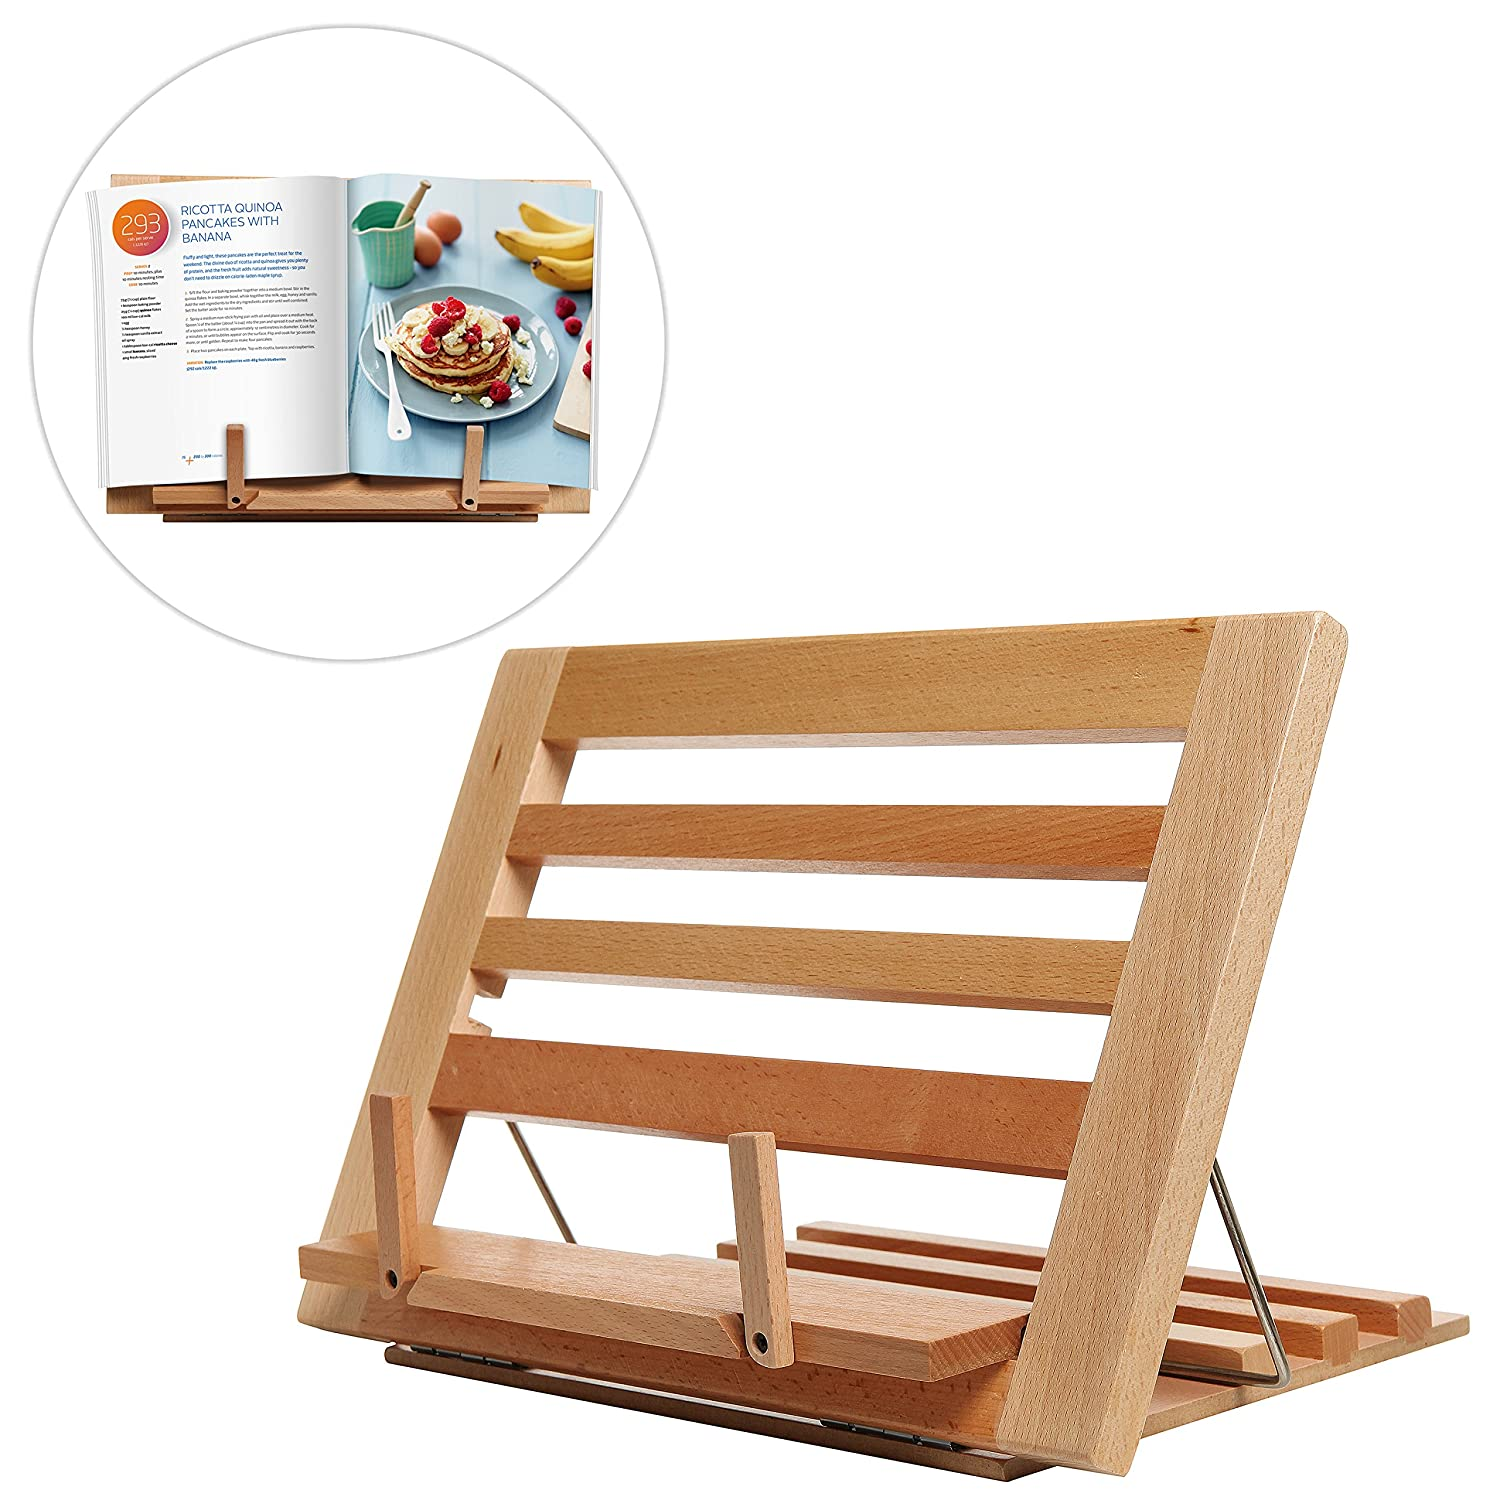 countertop folding alder wood cookbook holder